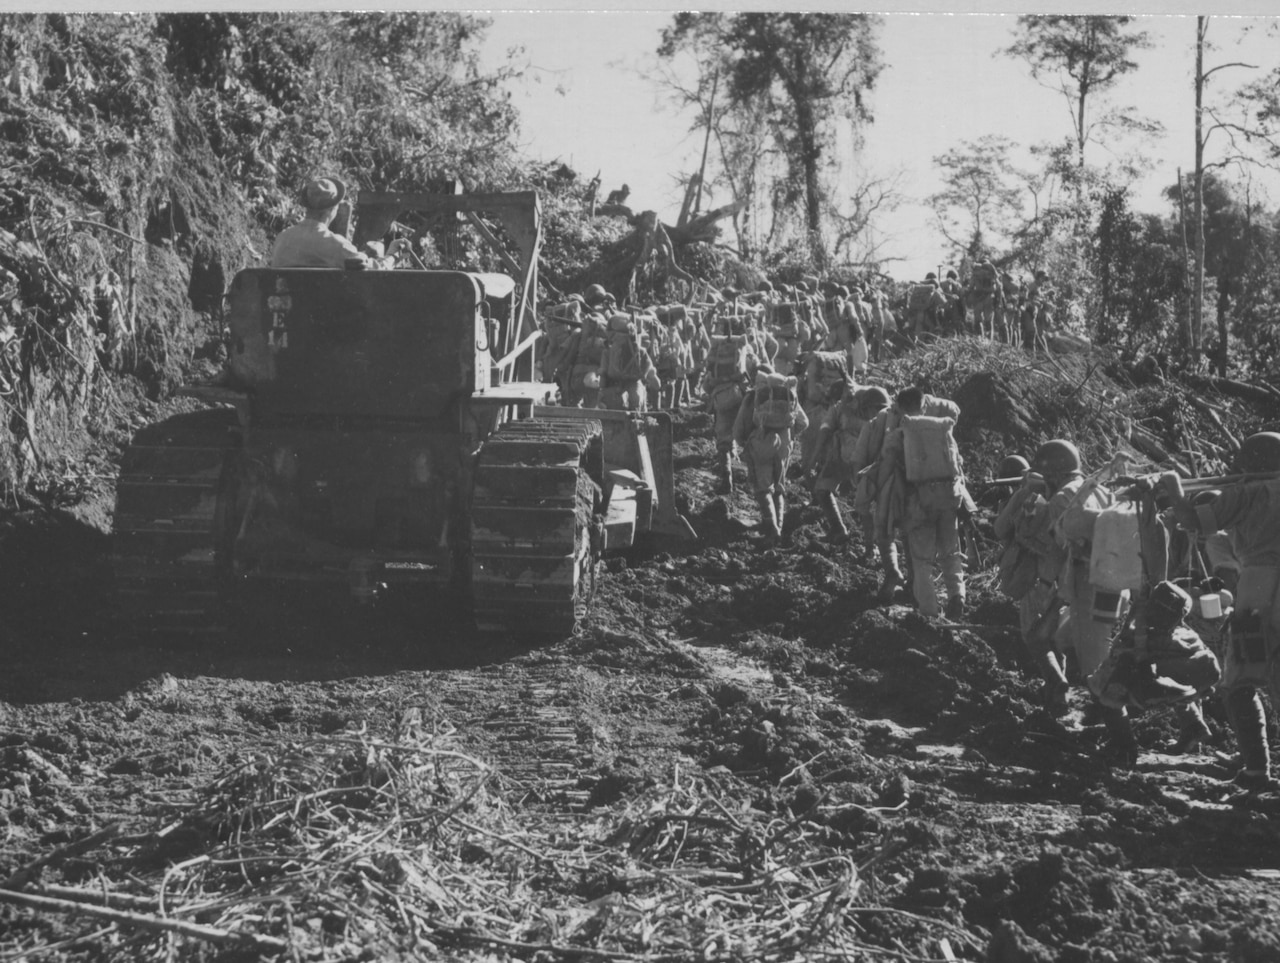 A line of soldiers walks past a large tractor that's working to clear a dirt road.